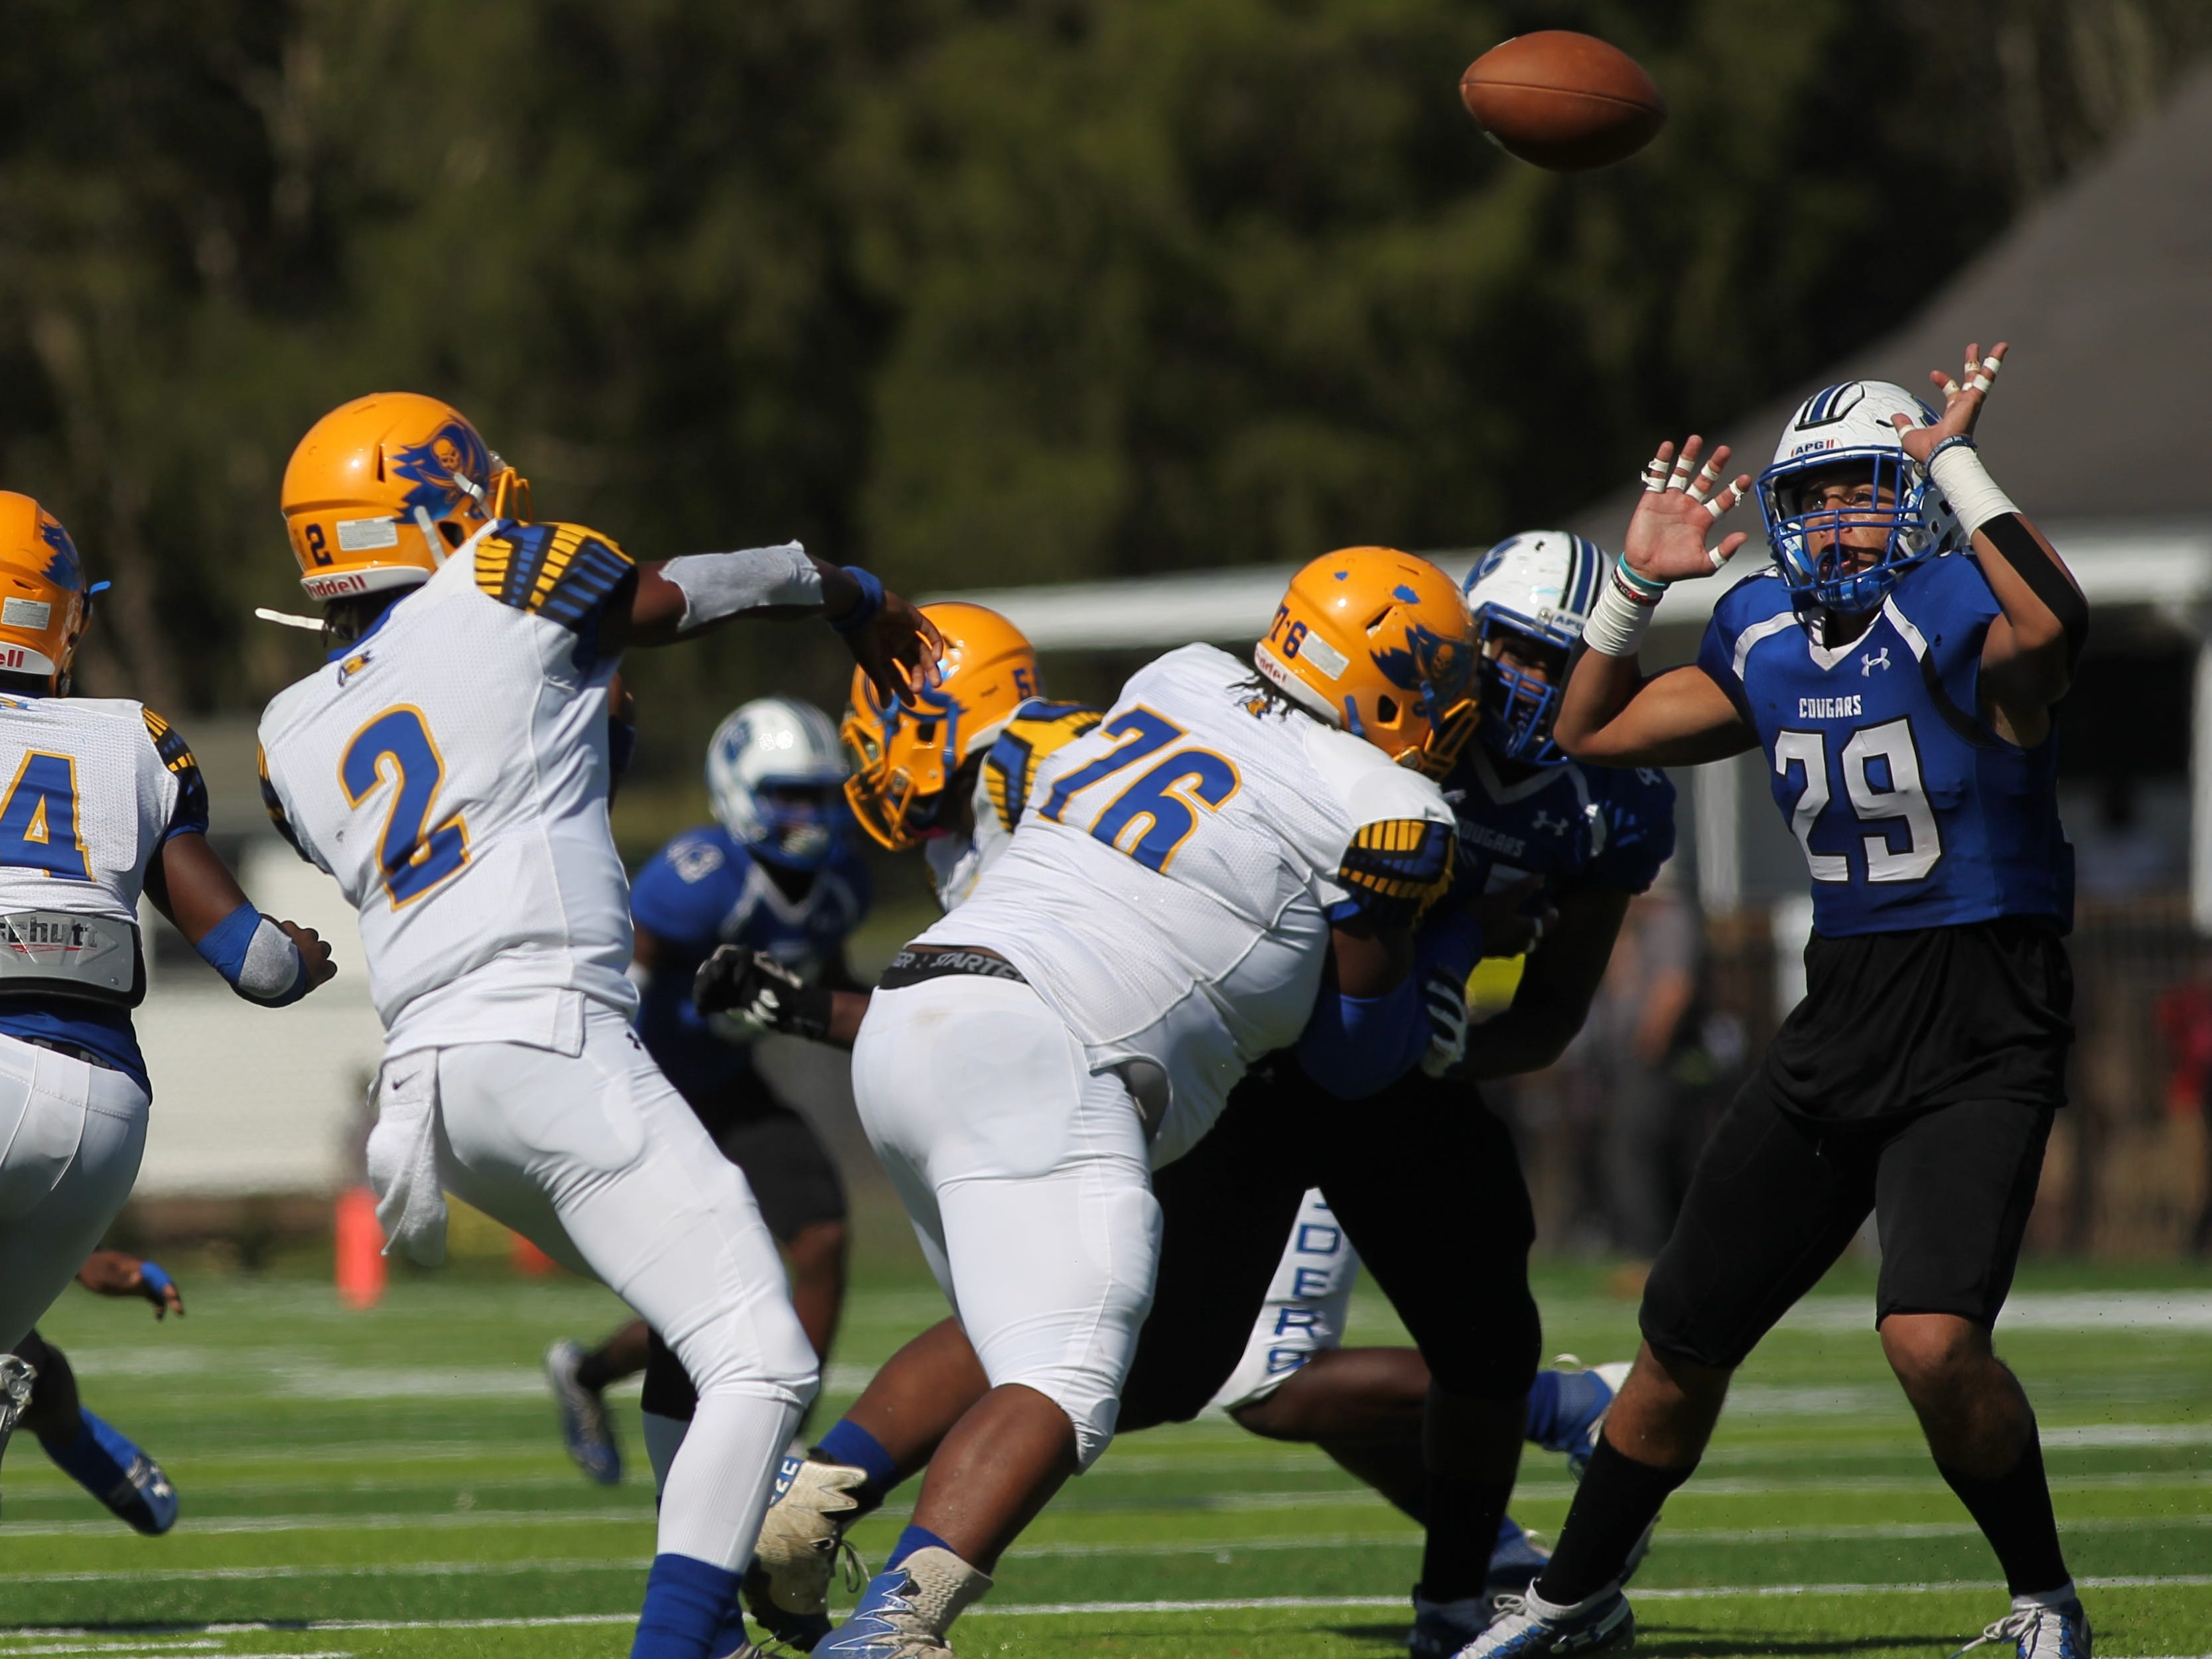 Rickards quarterback D'eryk Pete throws a pass against Godby that Kyler Laing tries to get his hands up to knock down.